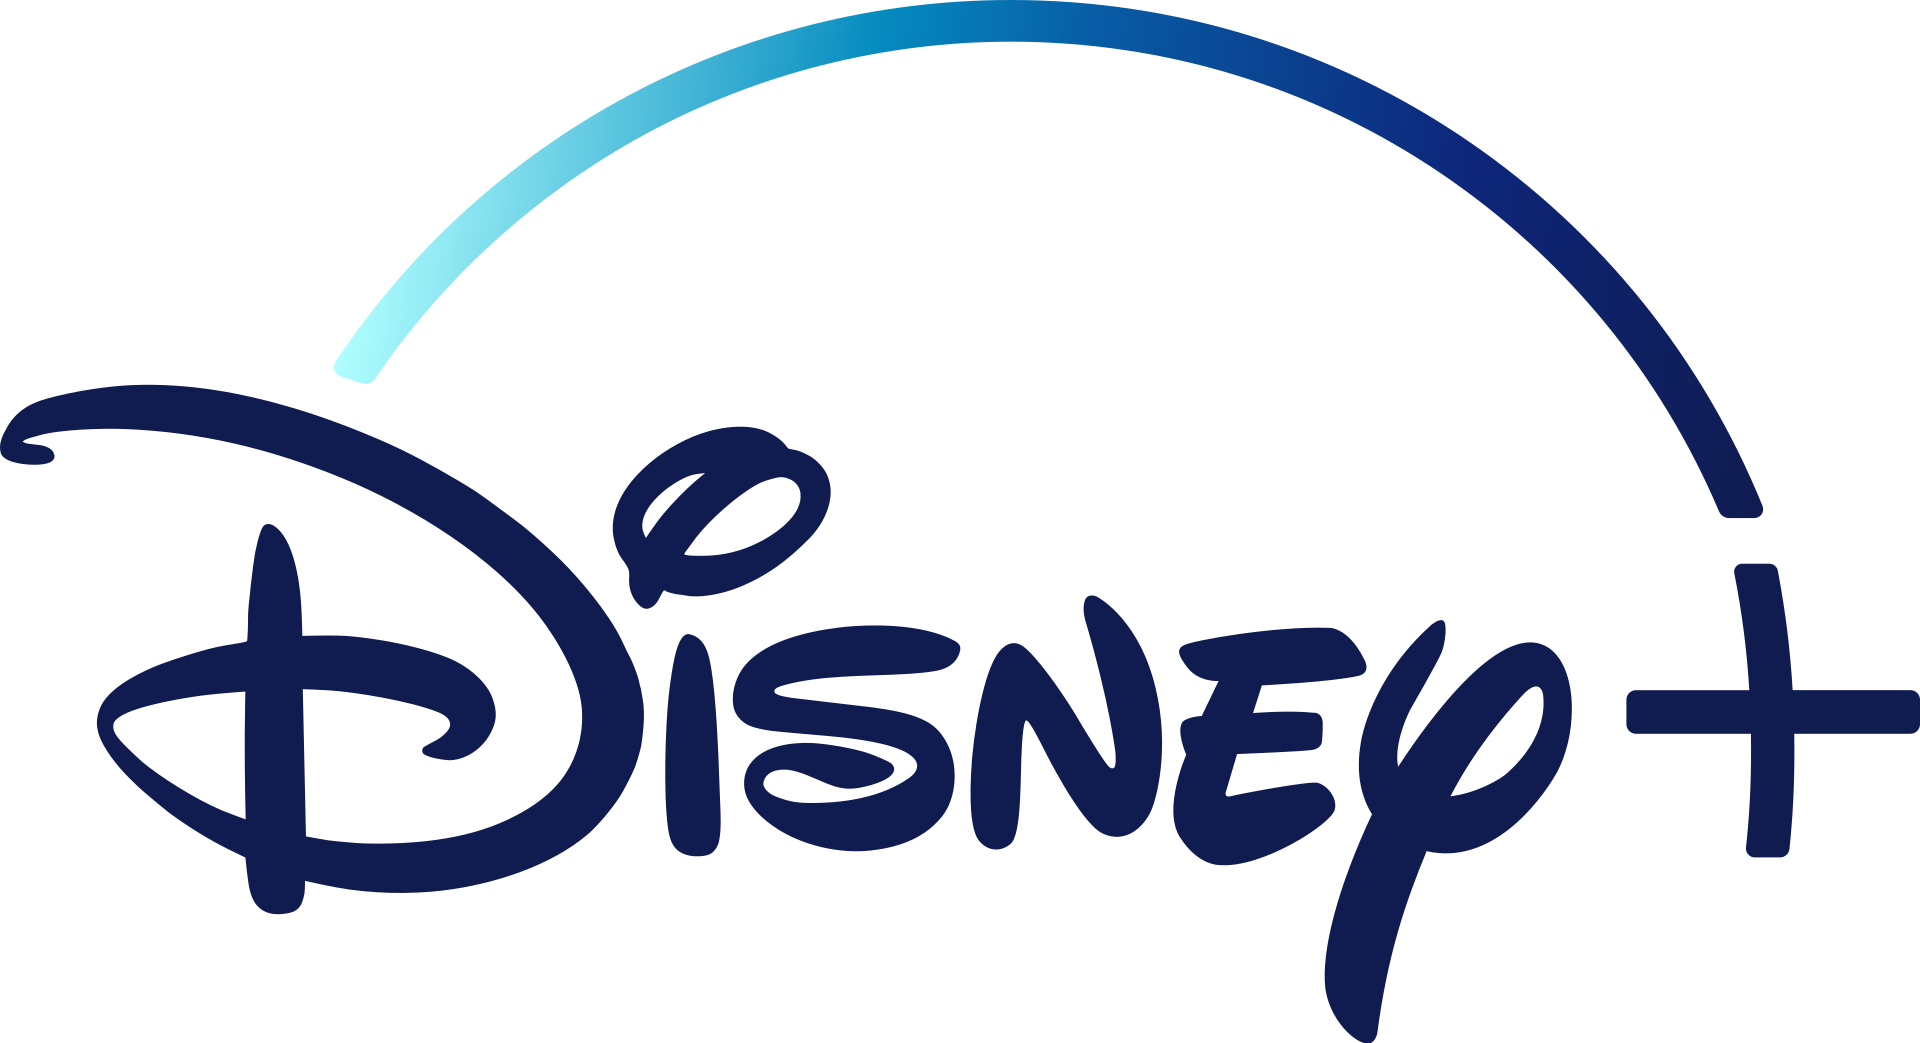 Disney+ is here: try it free for 7 days. After that, 6.99 euros per month or 69.99 euros for a yearly subscription.